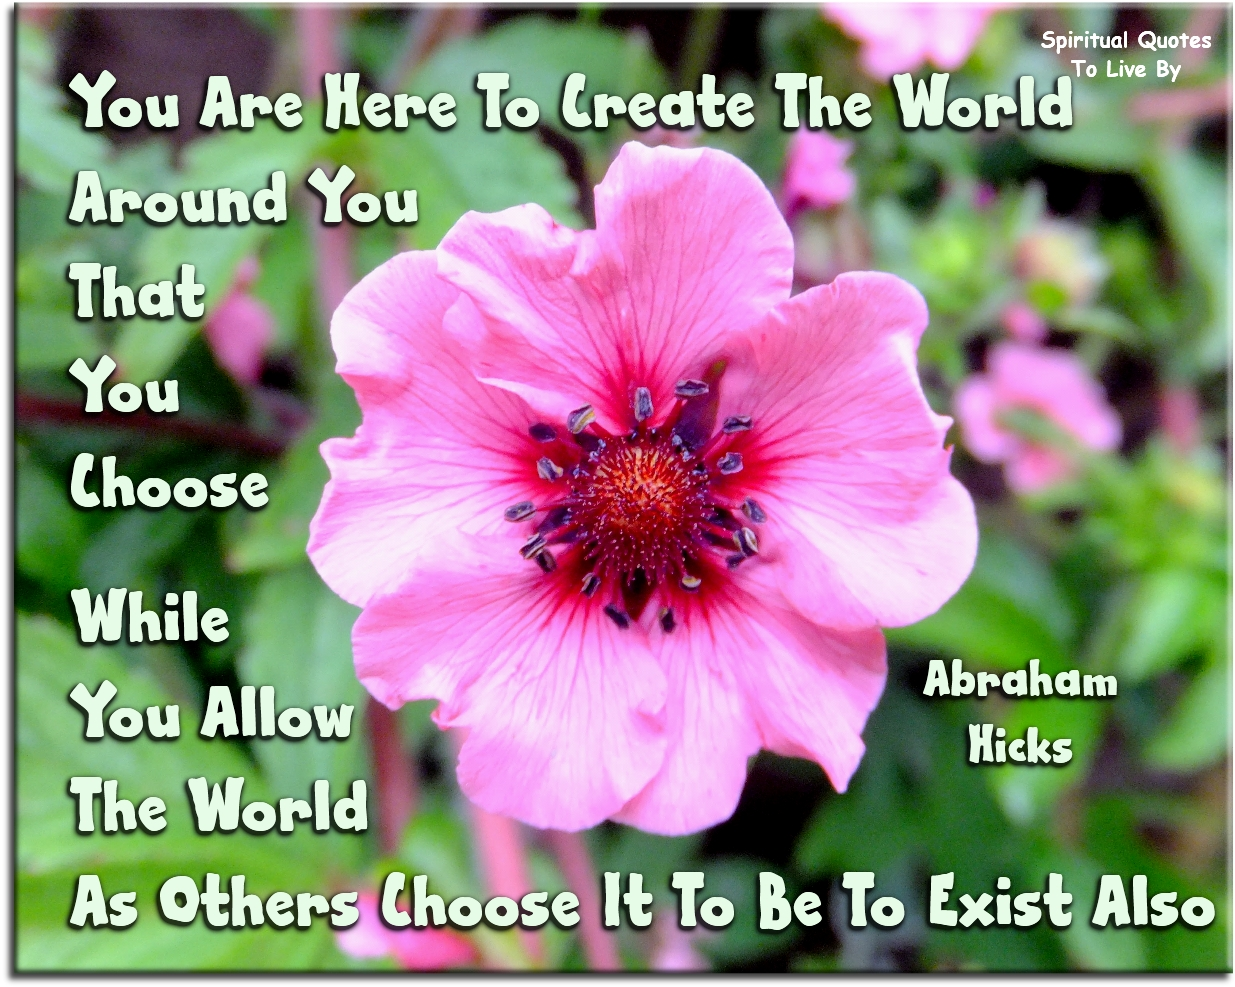 You are here to create the world around you that you choose, while you allow the world as others choose it to be exist also - Abraham-Hicks - Spiritual Quotes To Live By